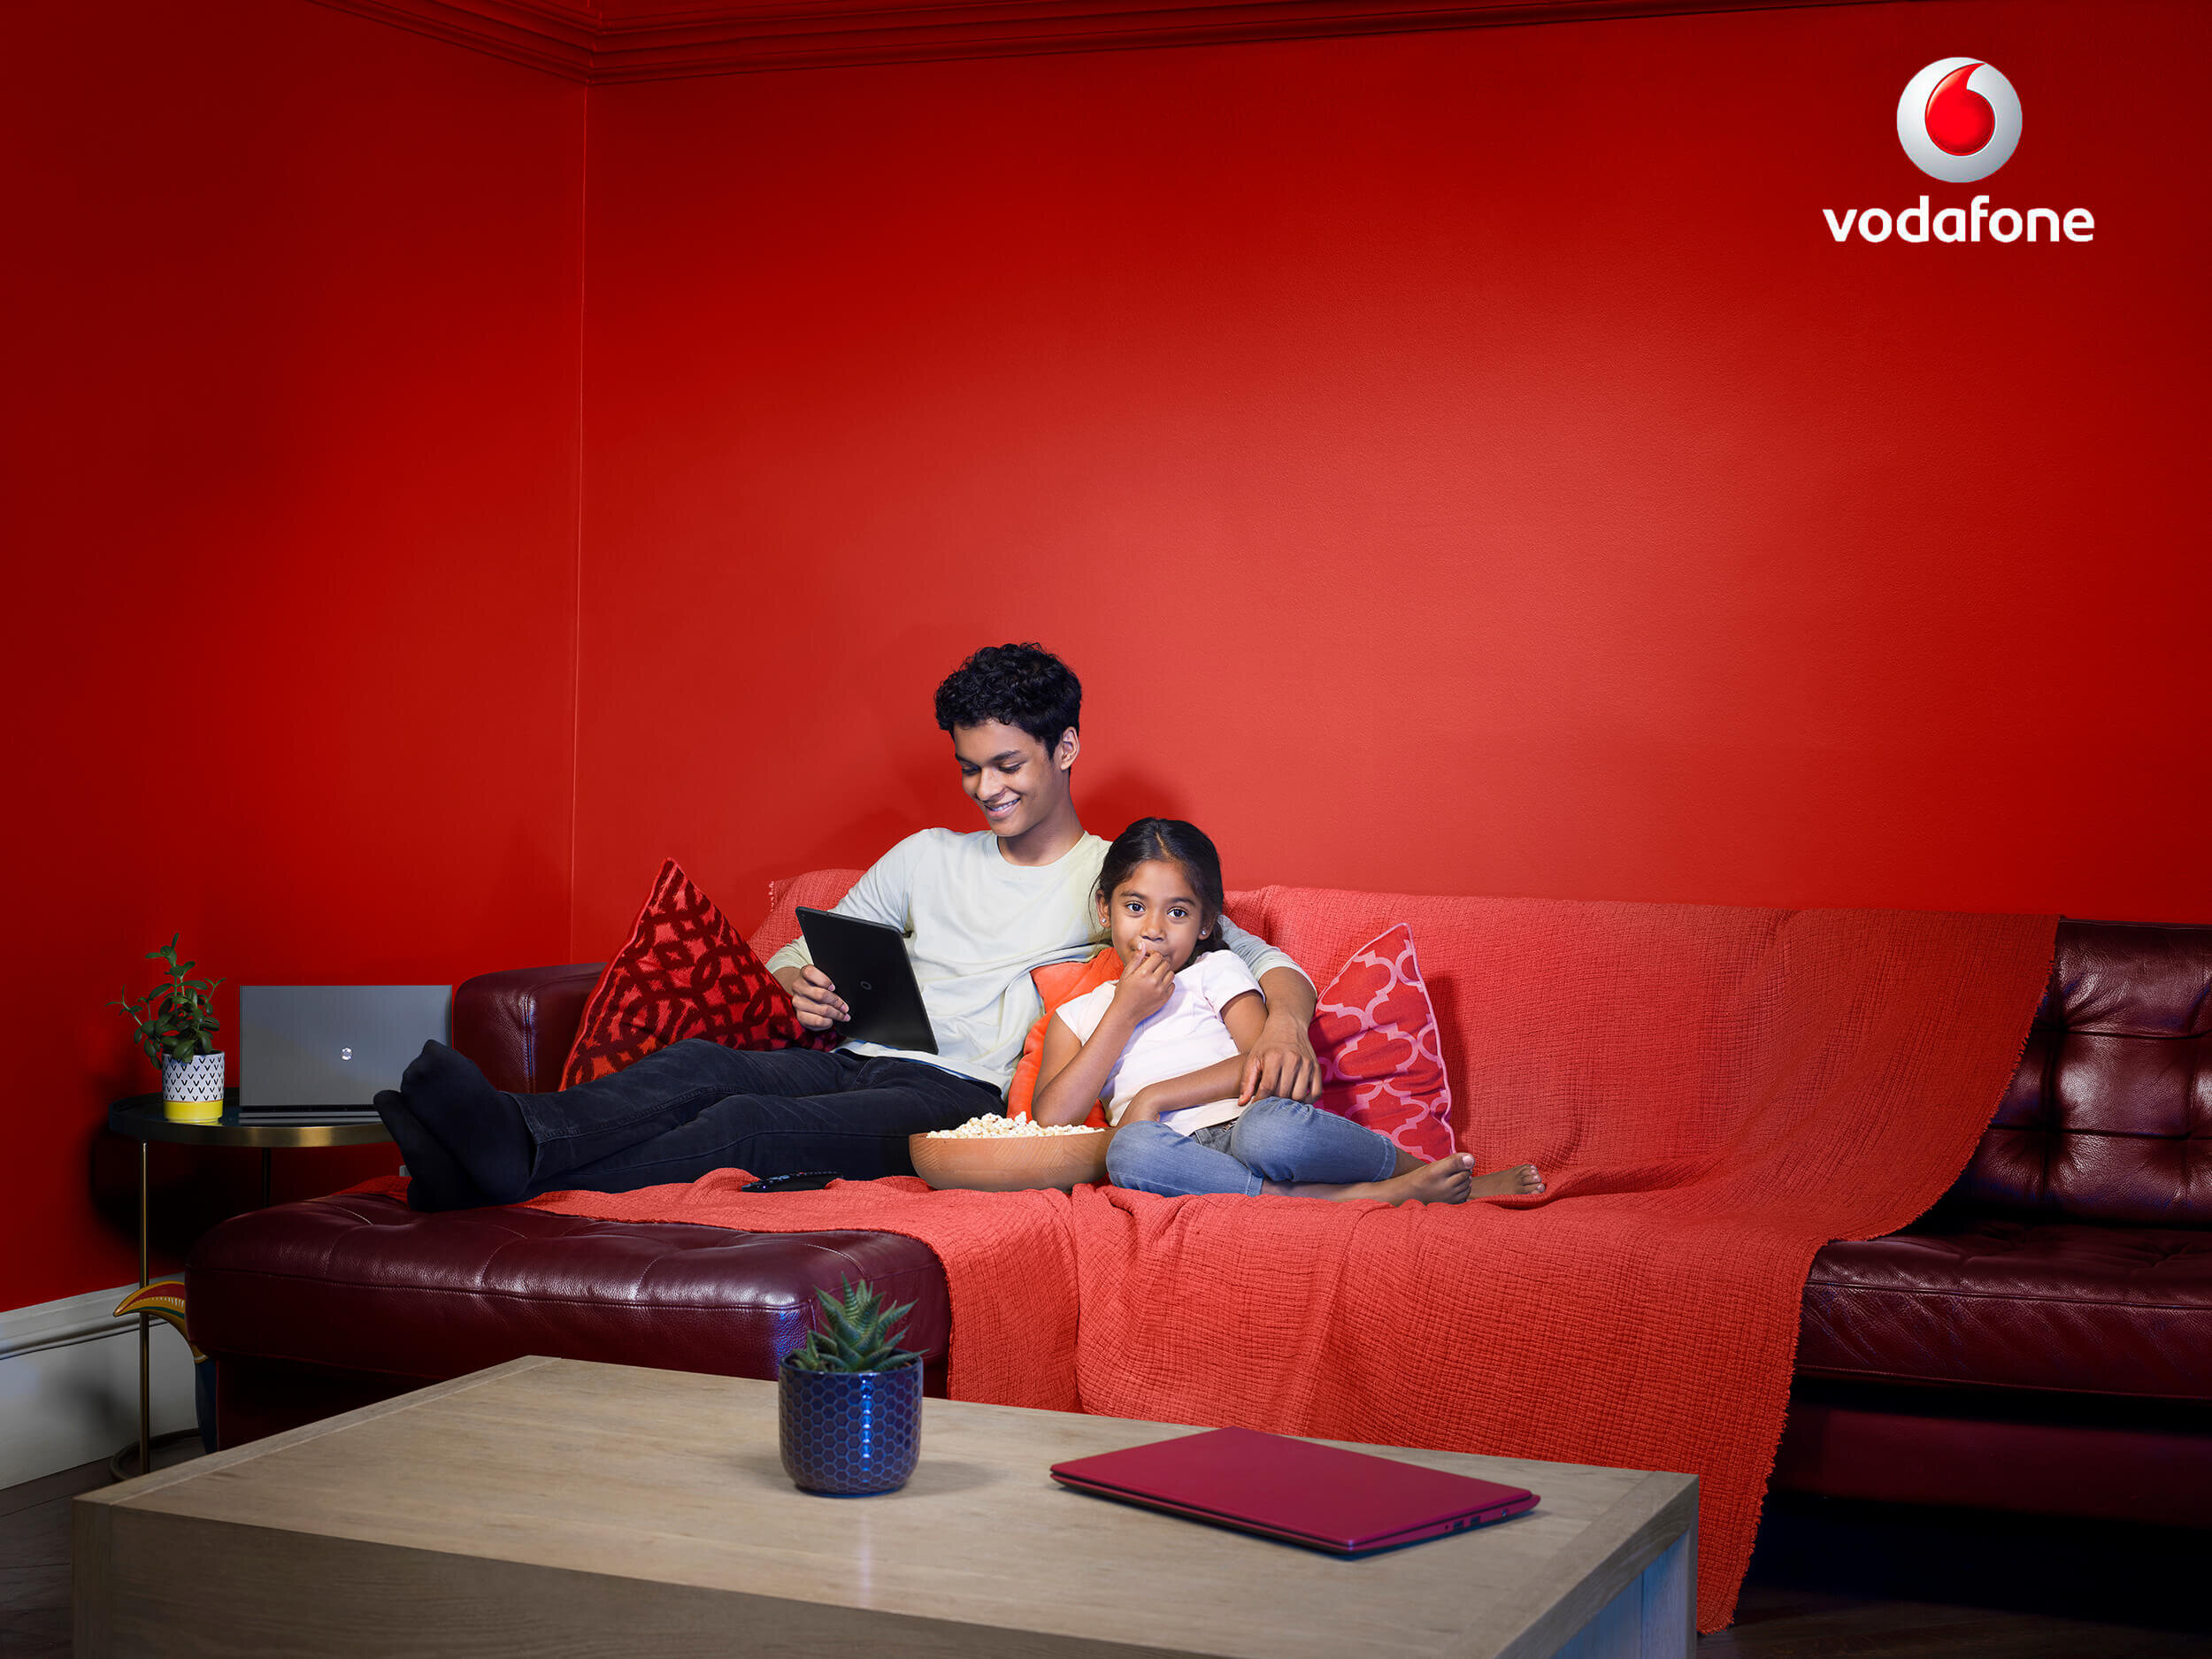 7883-Vodafone_Day-2-1003-LOUNGE_v1 copy.jpg